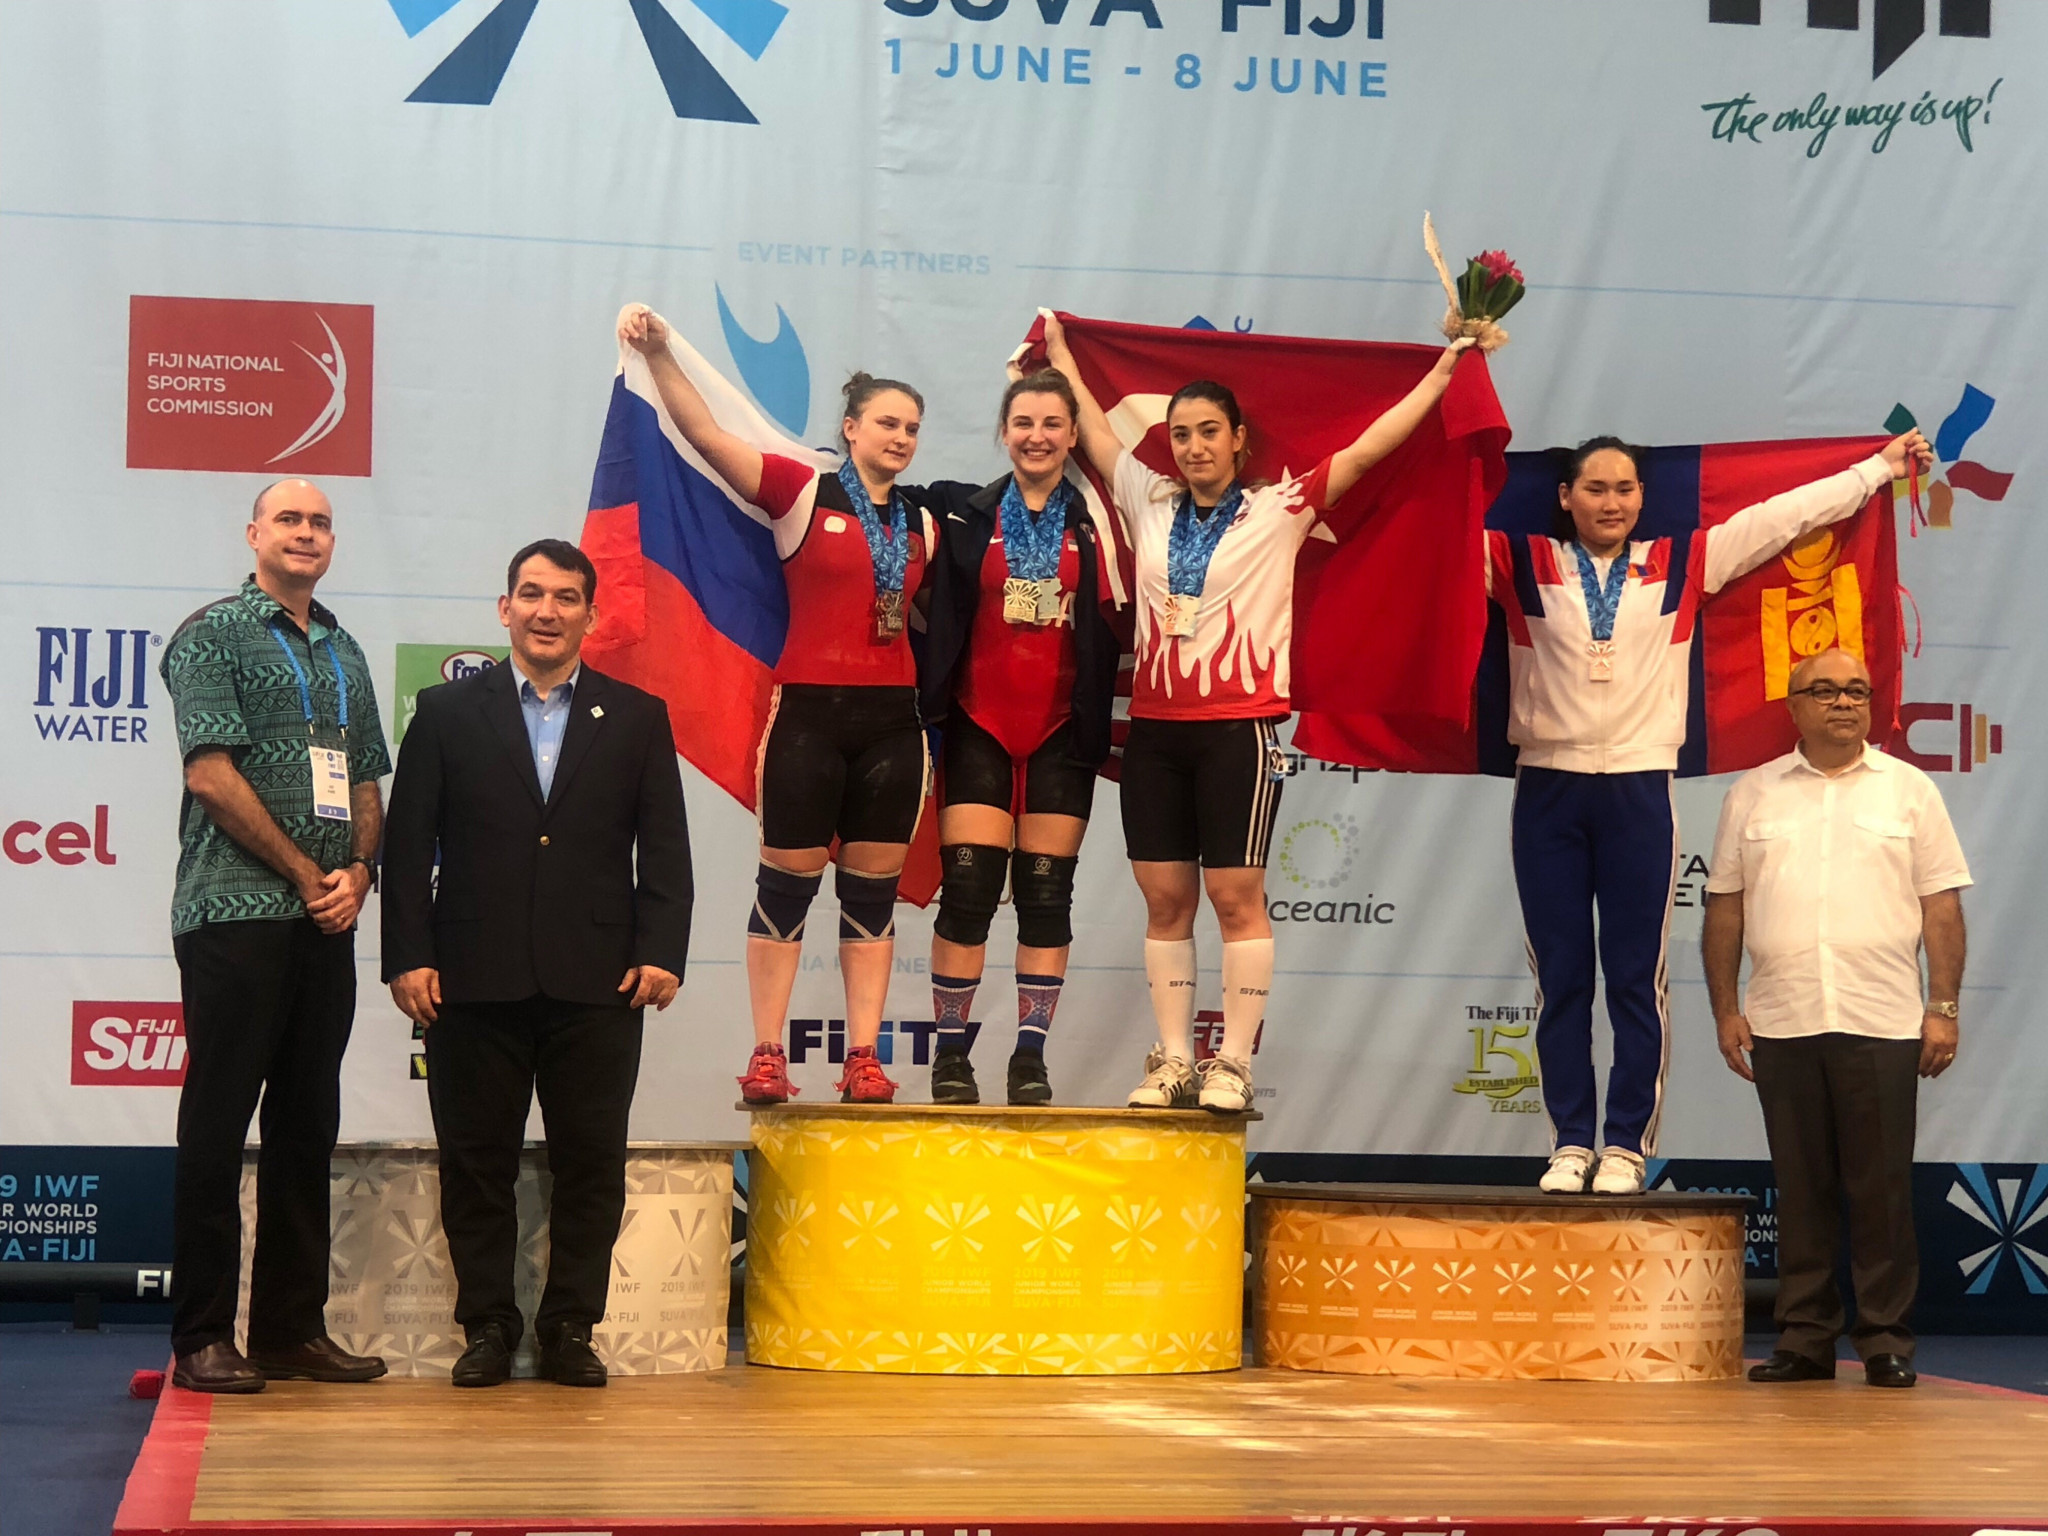 The United States' Kate Nye on the podium in Fiji ©USAW